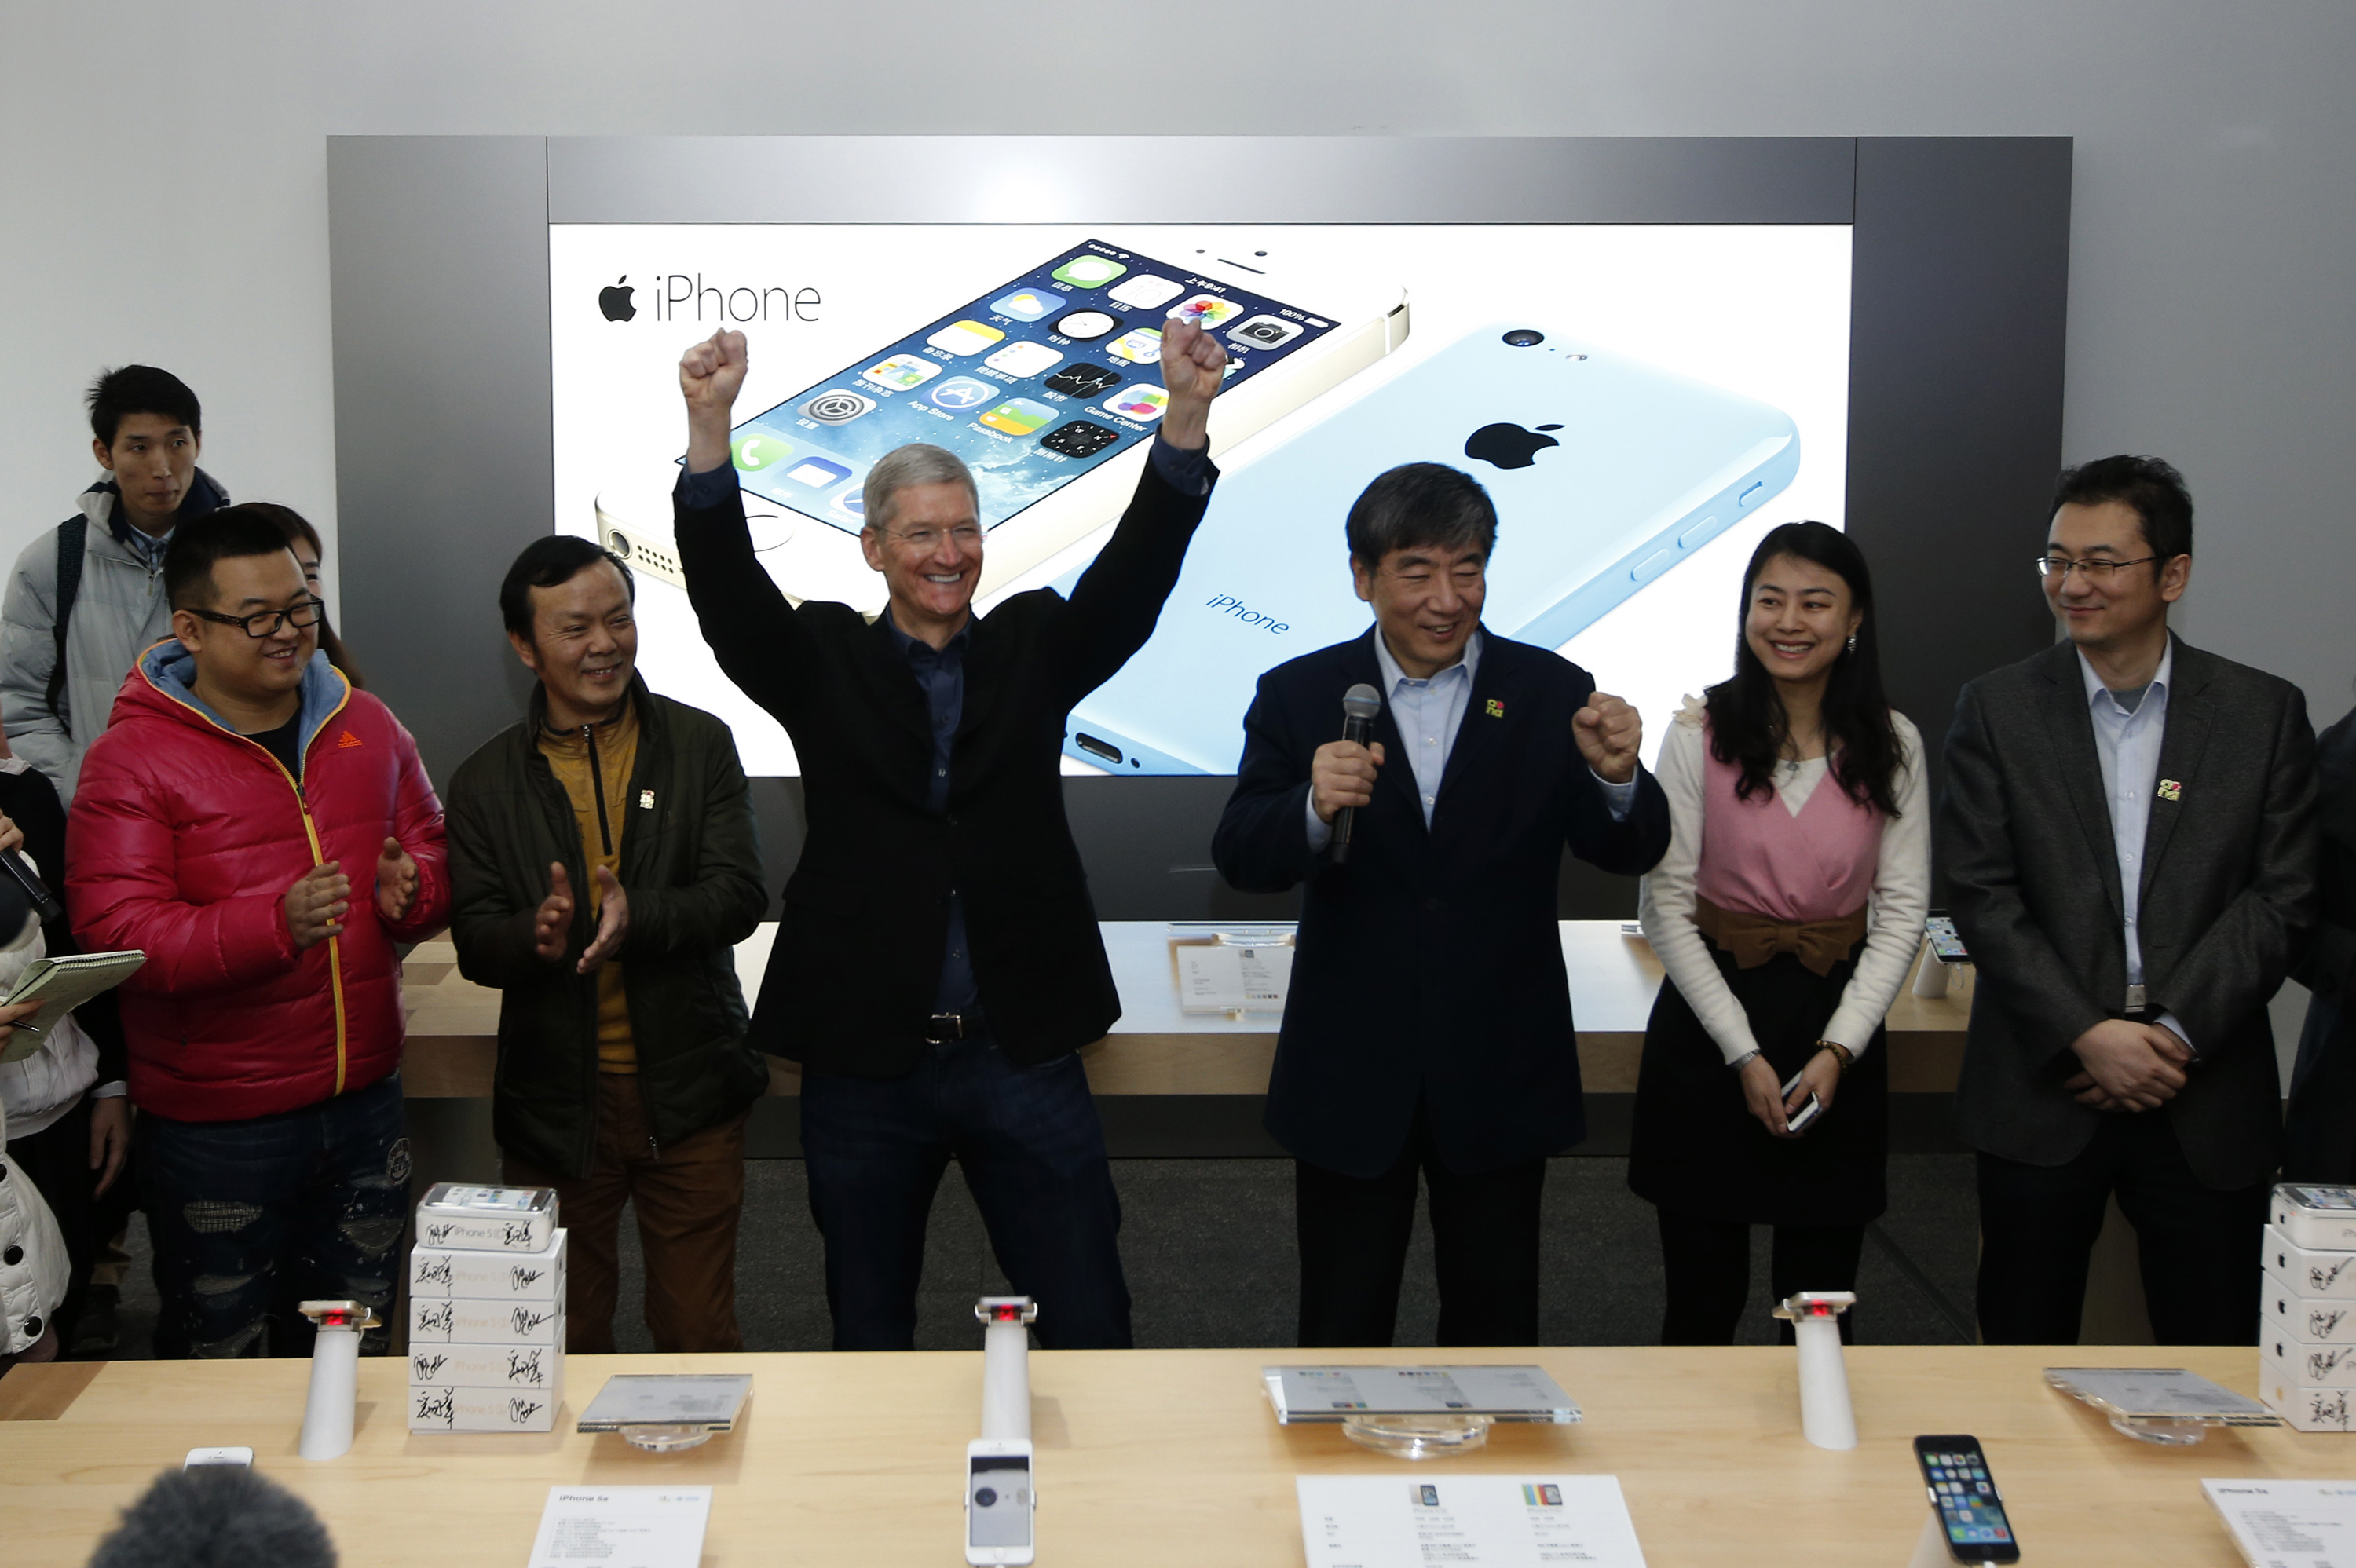 Apple Inc. CEO Tim Cook reacts at an event celebrating the launching of Apple's iPhone on China Mobile's network in Beijing